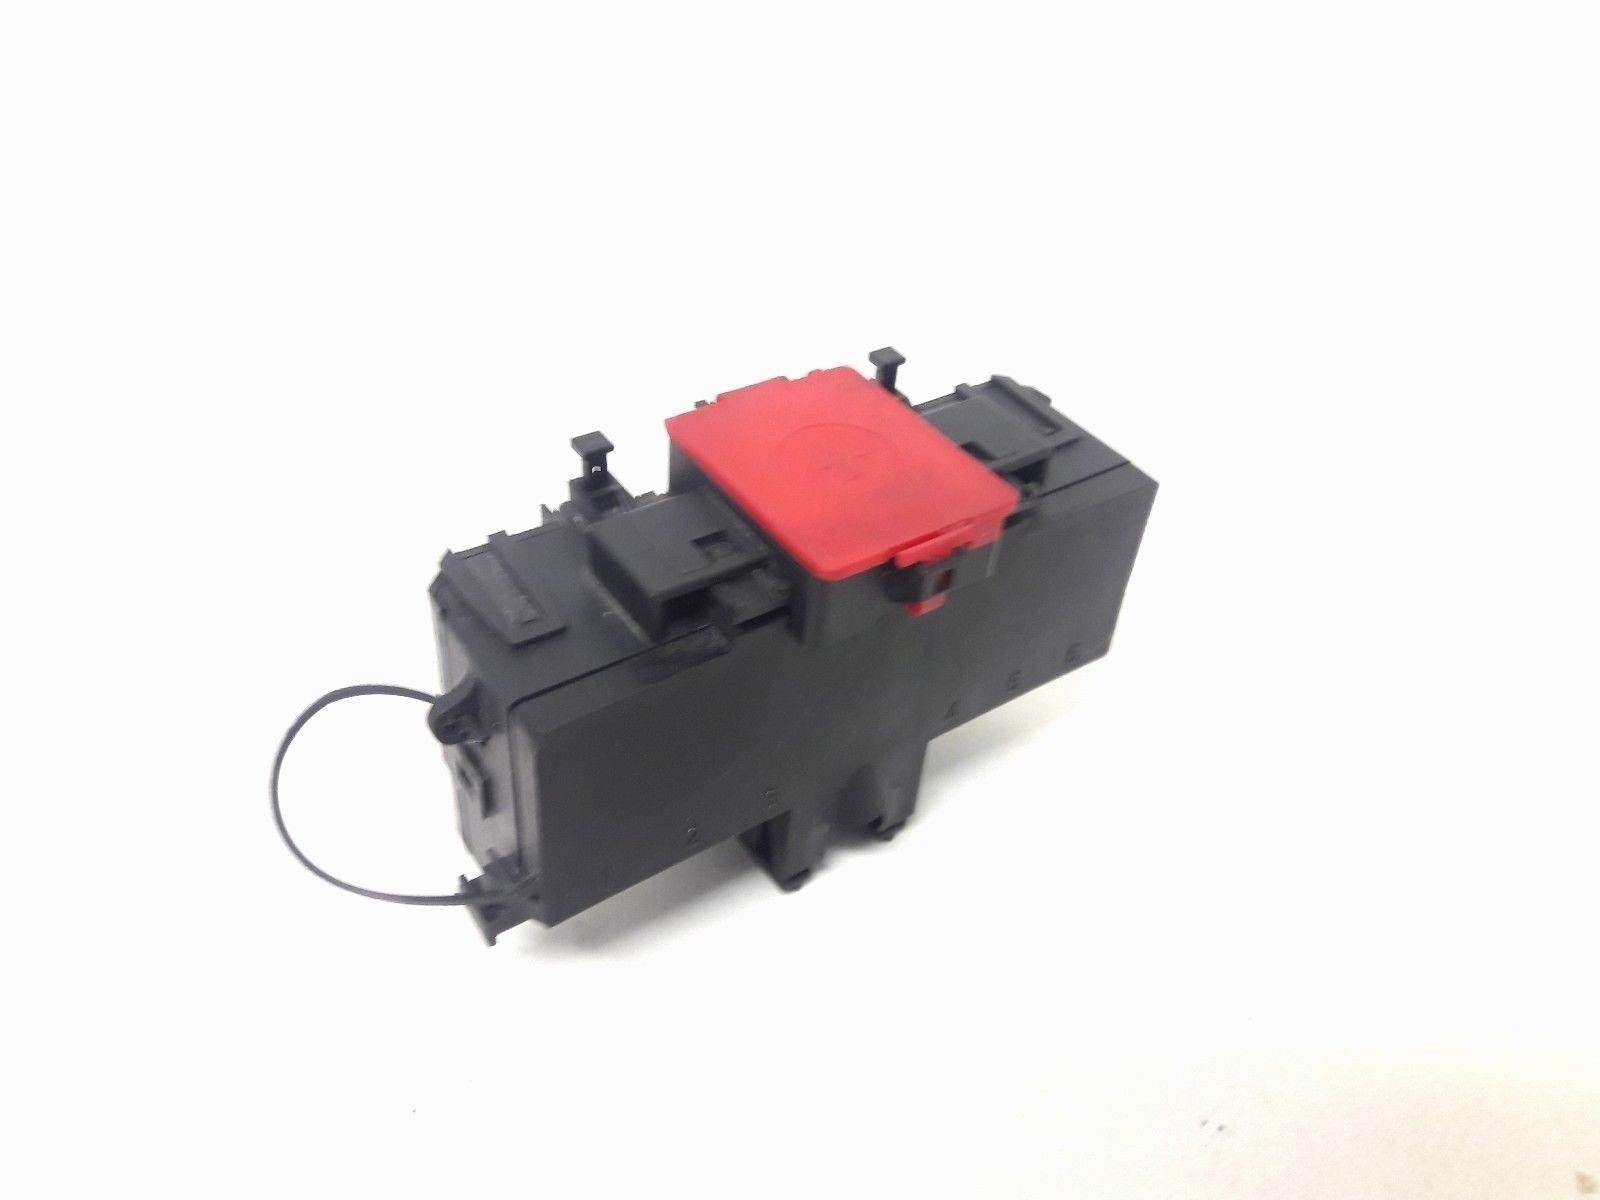 hight resolution of 2006 mercedes c230 positive battery terminal charge junction fuse box 2035450301 does not apply